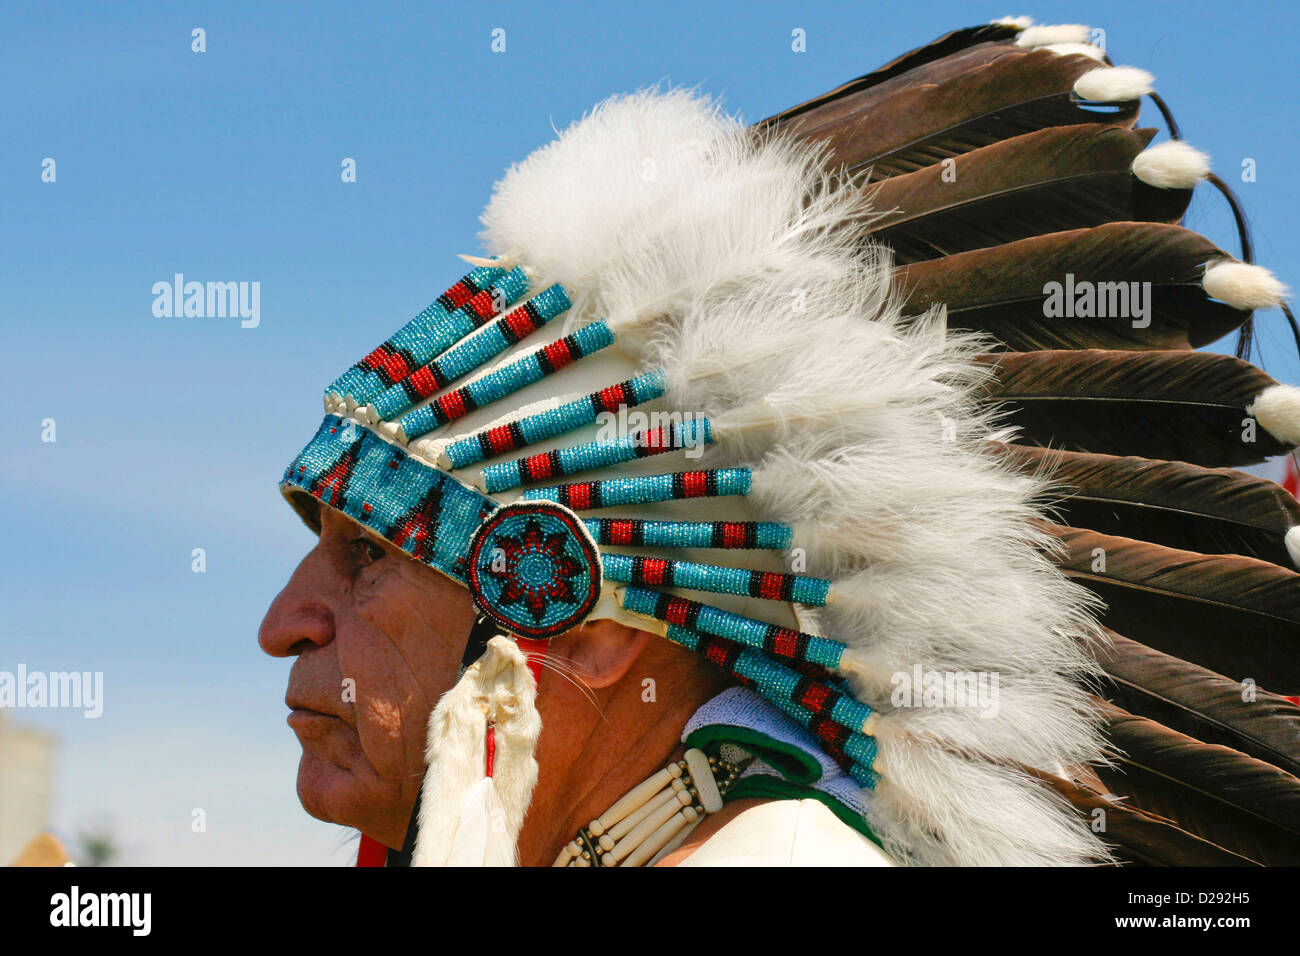 Squamish First Nations Chief At Opening Ceremonies Of Pow-Wow, West Vancouver, B.C., Canada - Stock Image